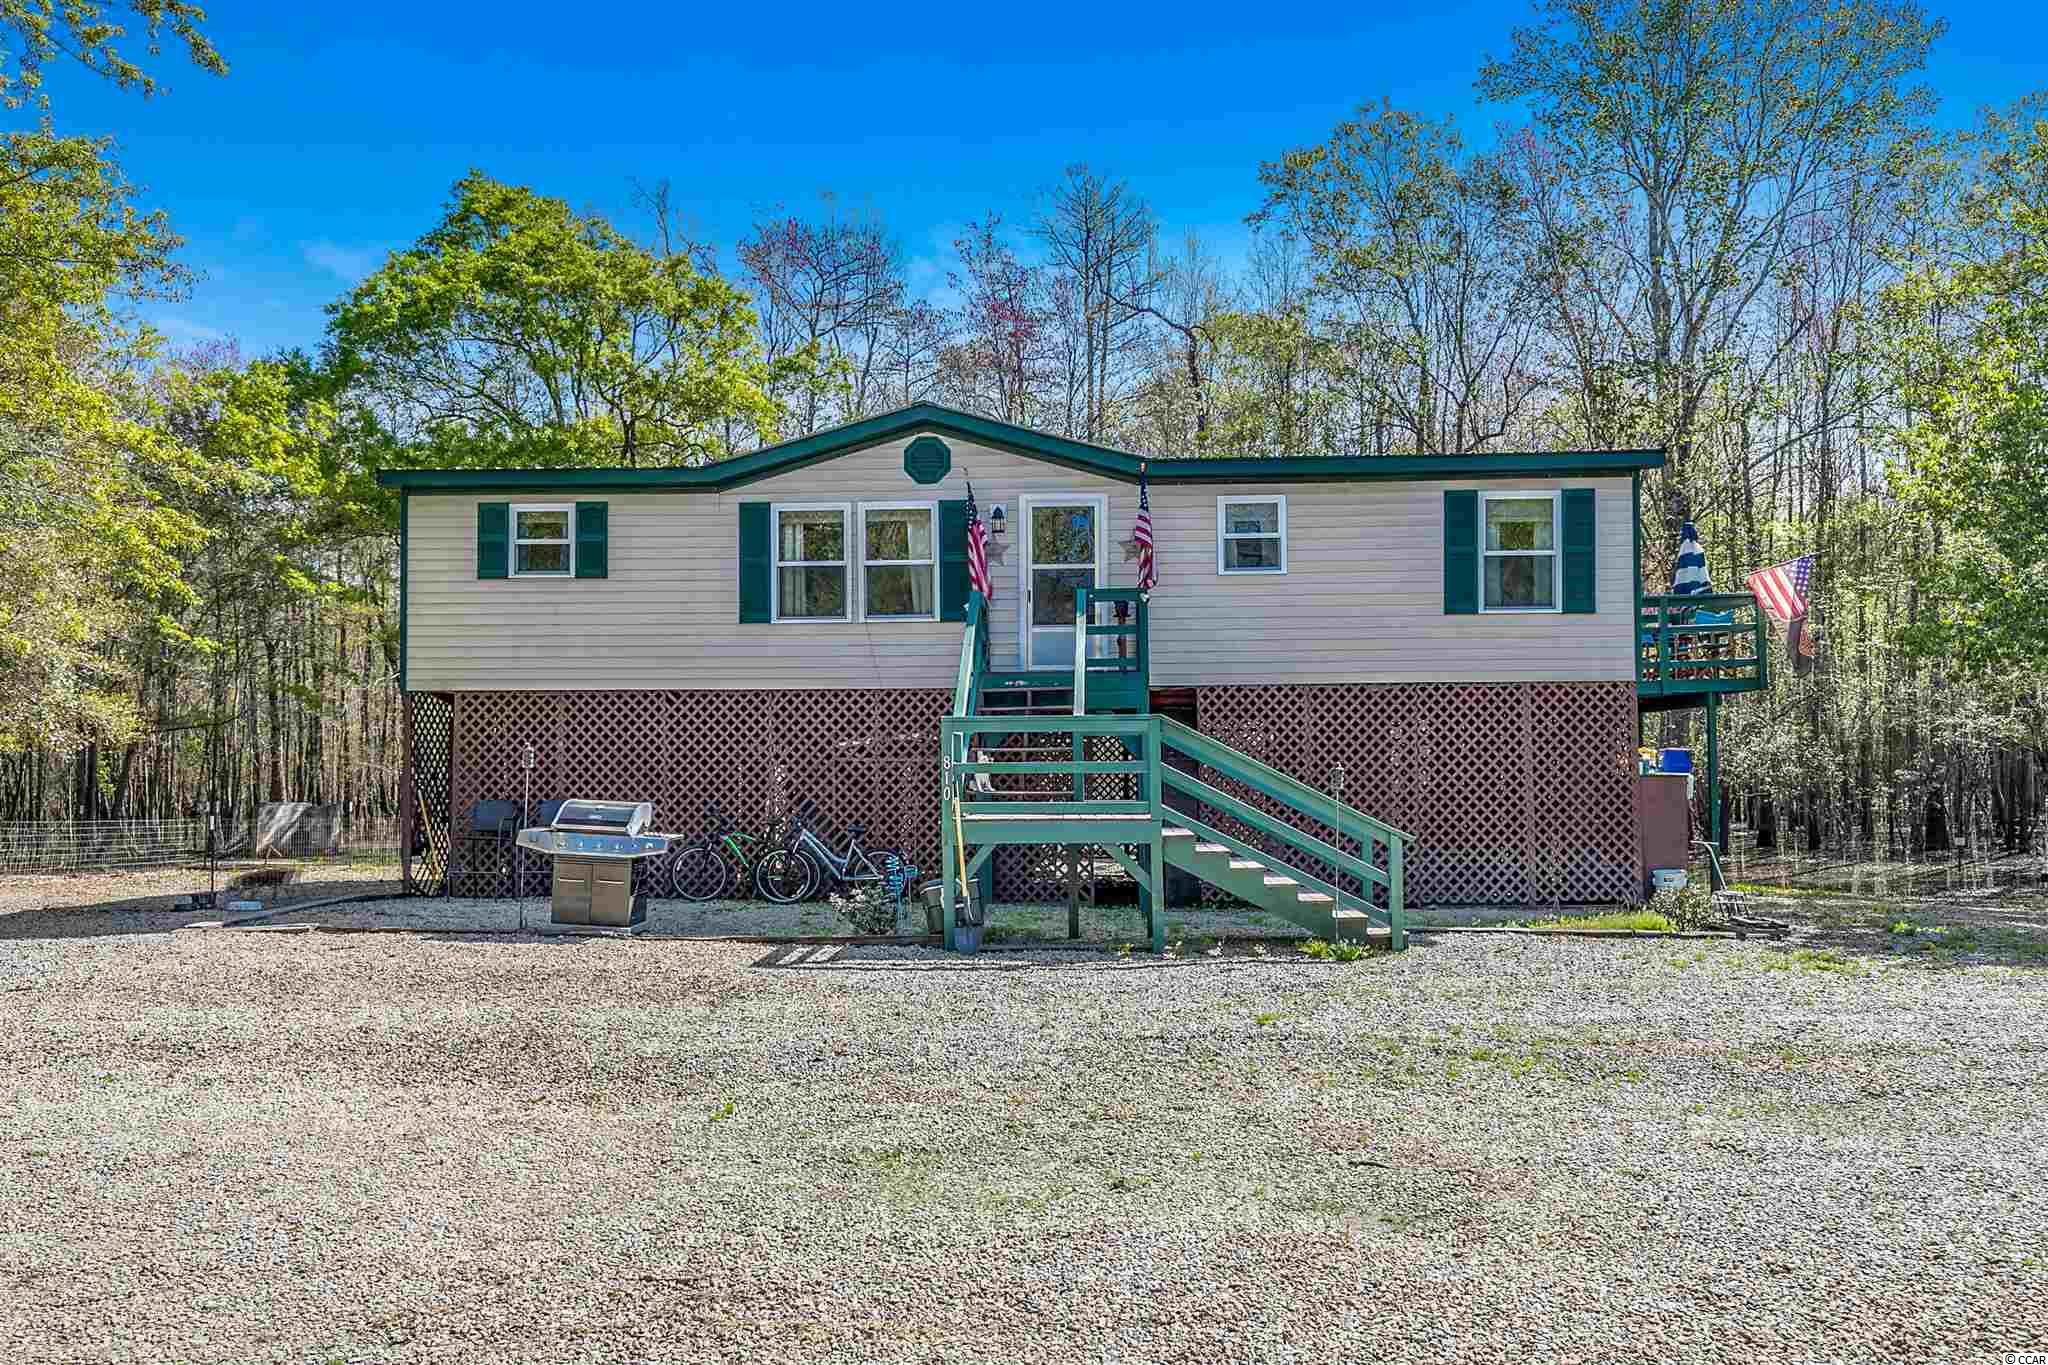 Fisherman's and nature lover's retreat. Check out this recently renovated raised manufactured home located near the Waccamaw River and nearby Lee's Landing public boat ramp. The home has a spacious floor plan with lots of storage and has new windows, a new roof, new hot water heater, laminate flooring, and updated kitchen and bathrooms. This is a great primary home or secondary residence. 20 minutes to Myrtle Beach and 10 minutes to beautiful downtown historic Conway. All measurements are approximate and not guaranteed. Buyer is responsible for verification.